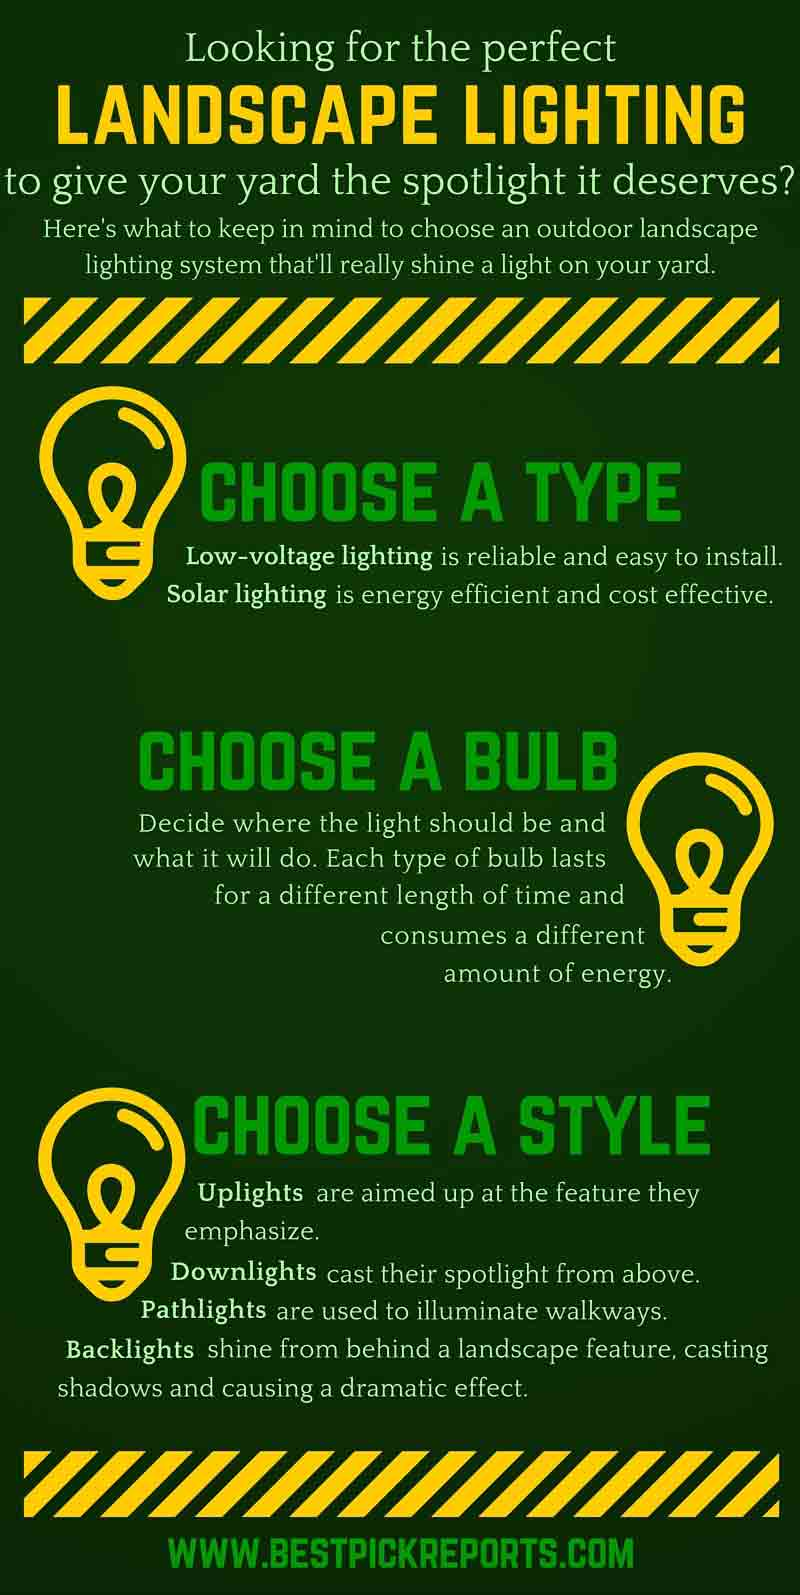 How to Choose Your Perfect Landscape Lighting System